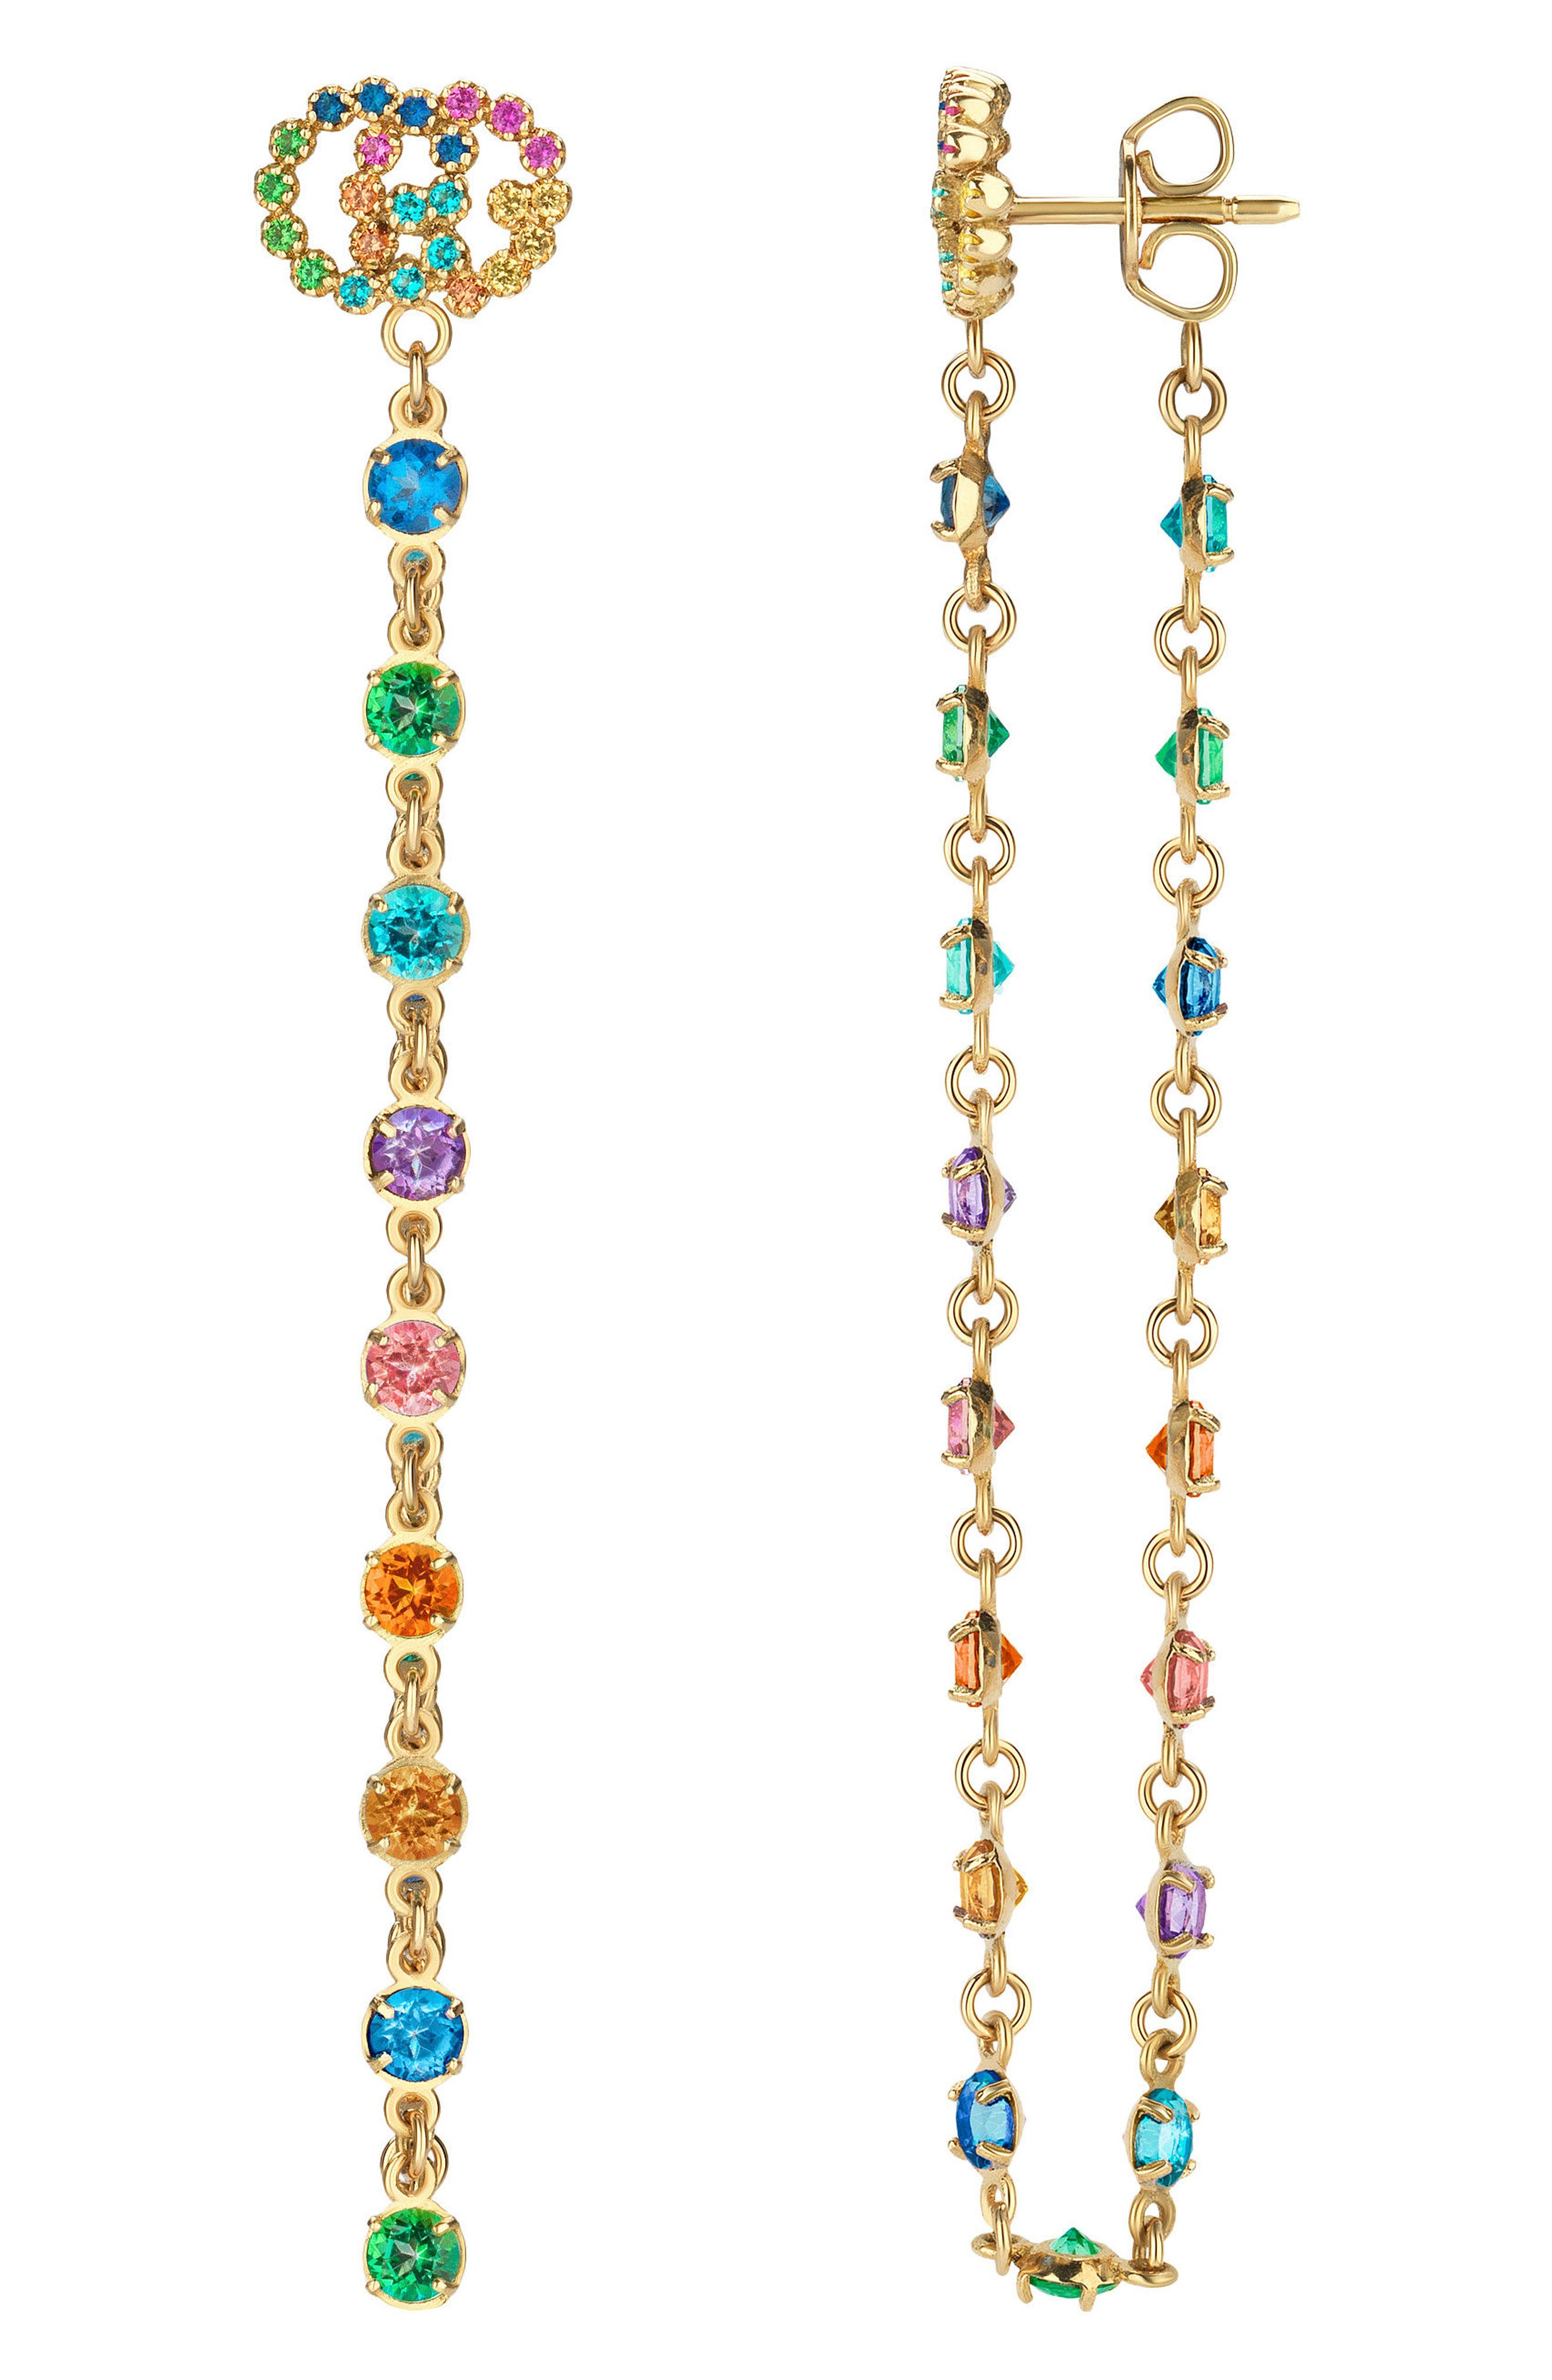 22fcced0e0e166 Gucci Double-G Multistone Chain Stud Earrings In 18Kt Yellow Gold &  Multicolor